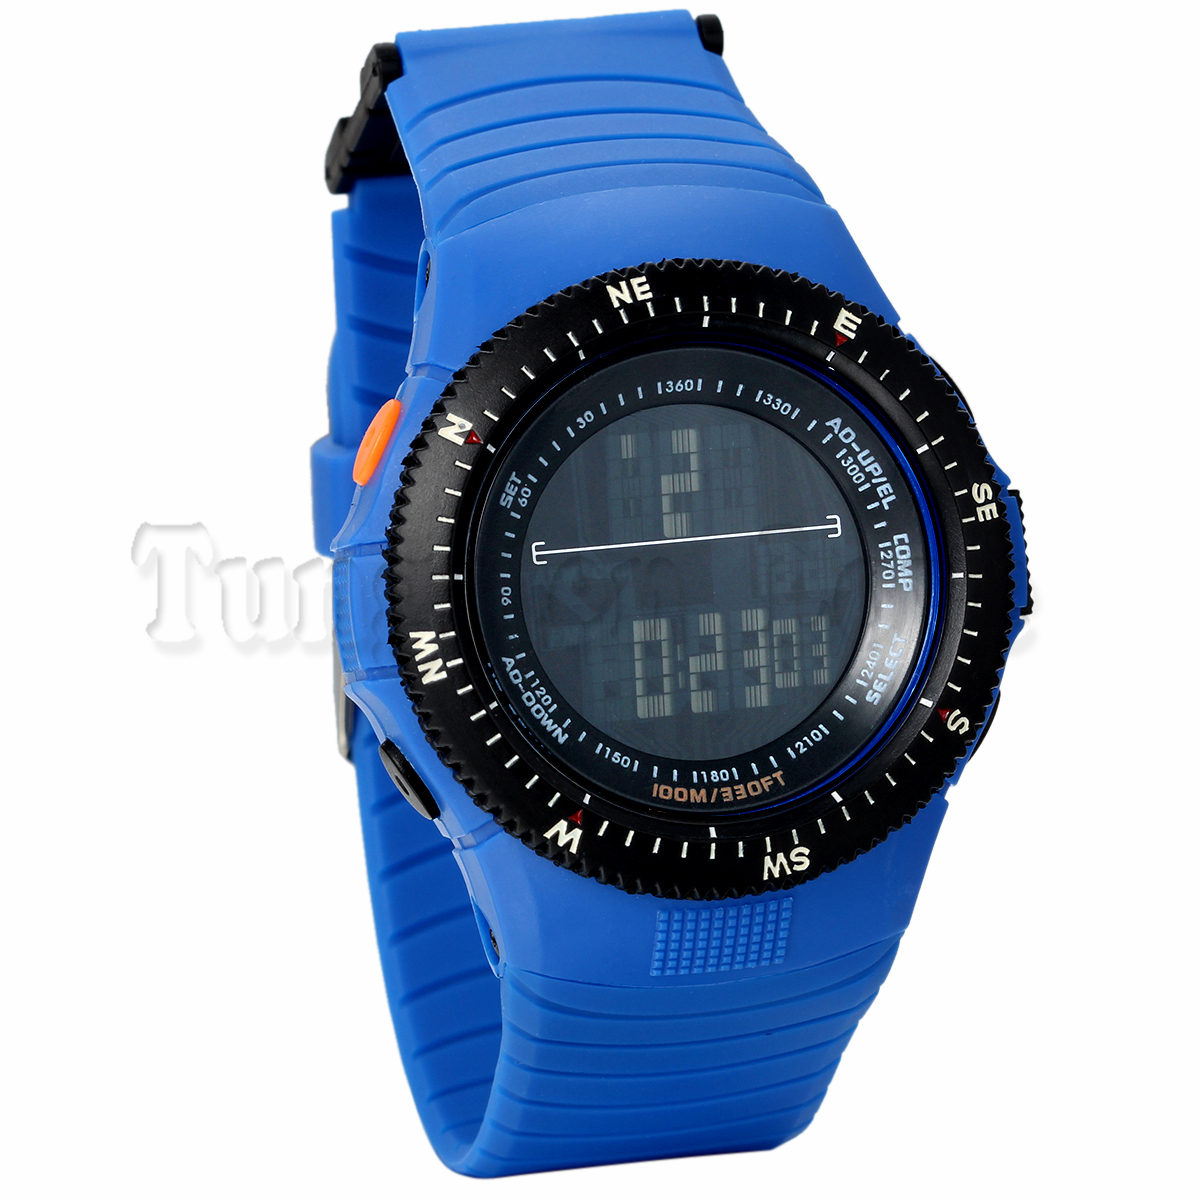 Military Army Men Digital Compass Watch 50M Waterproof watch Multiple Function Watch Blue Black Brown Band(China (Mainland))